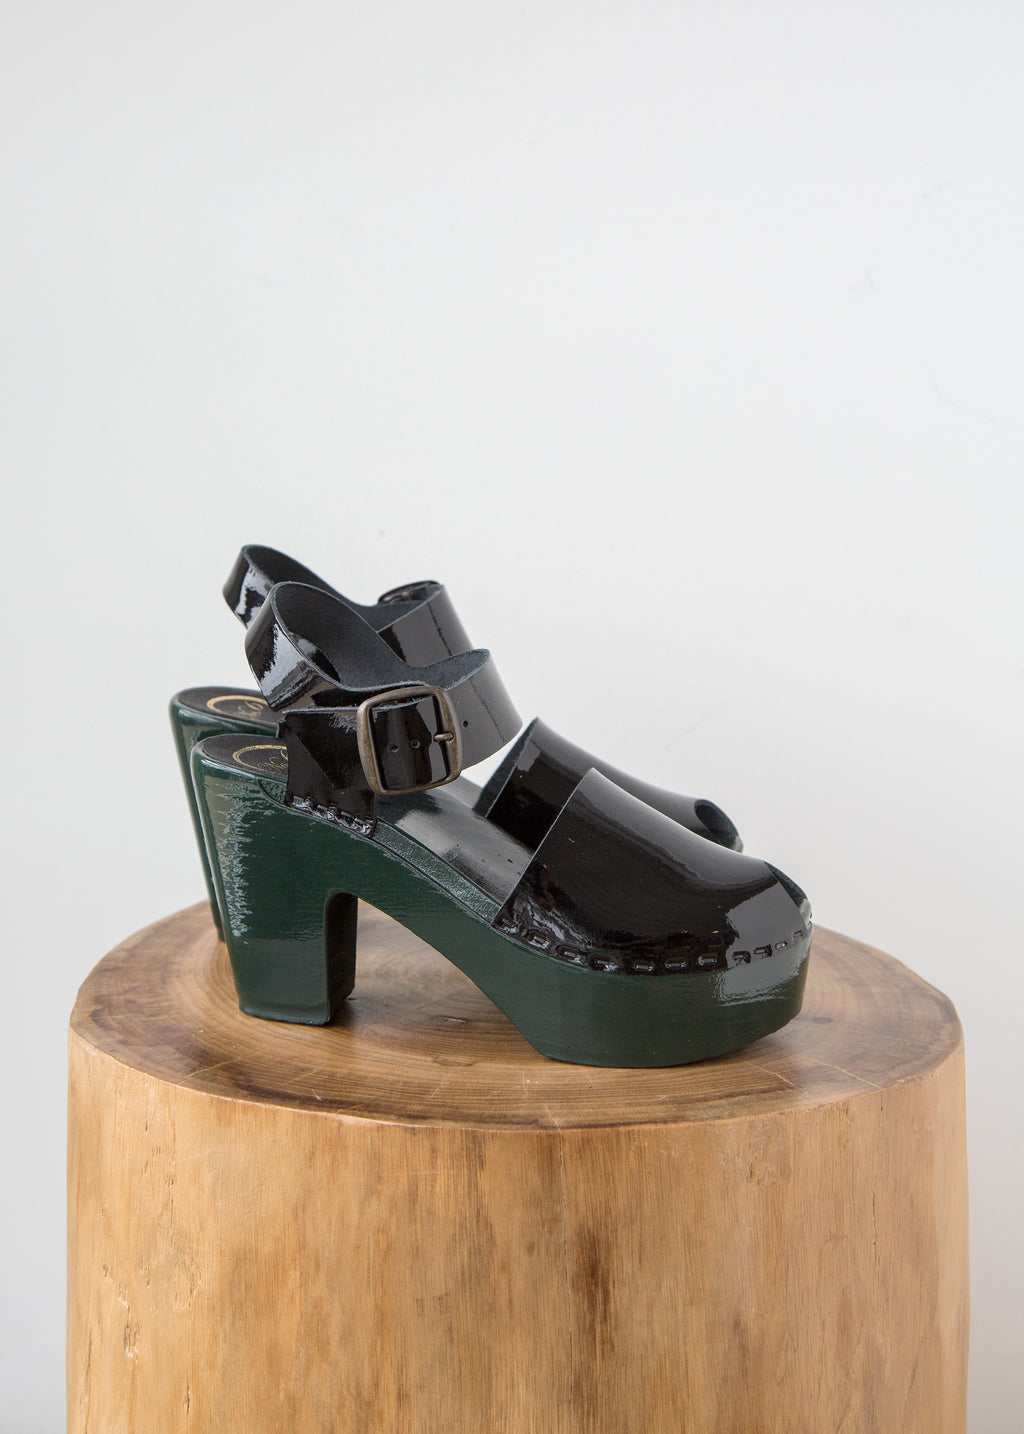 No.6 Jane Clog w Peep Toe Black/Green - SOLD OUT